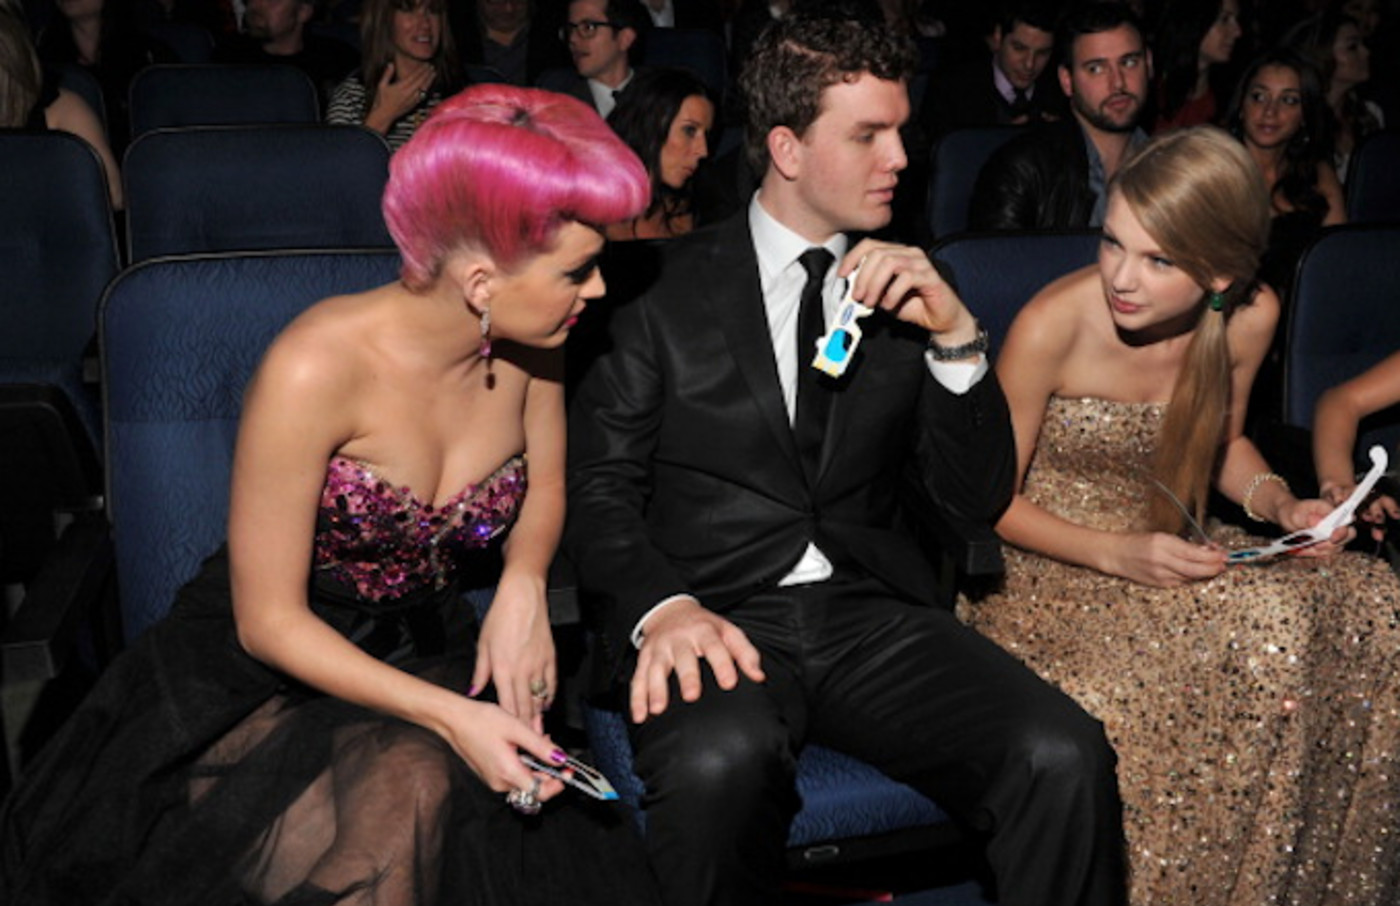 Singer Katy Perry, Austin Swift and singer Taylor Swift